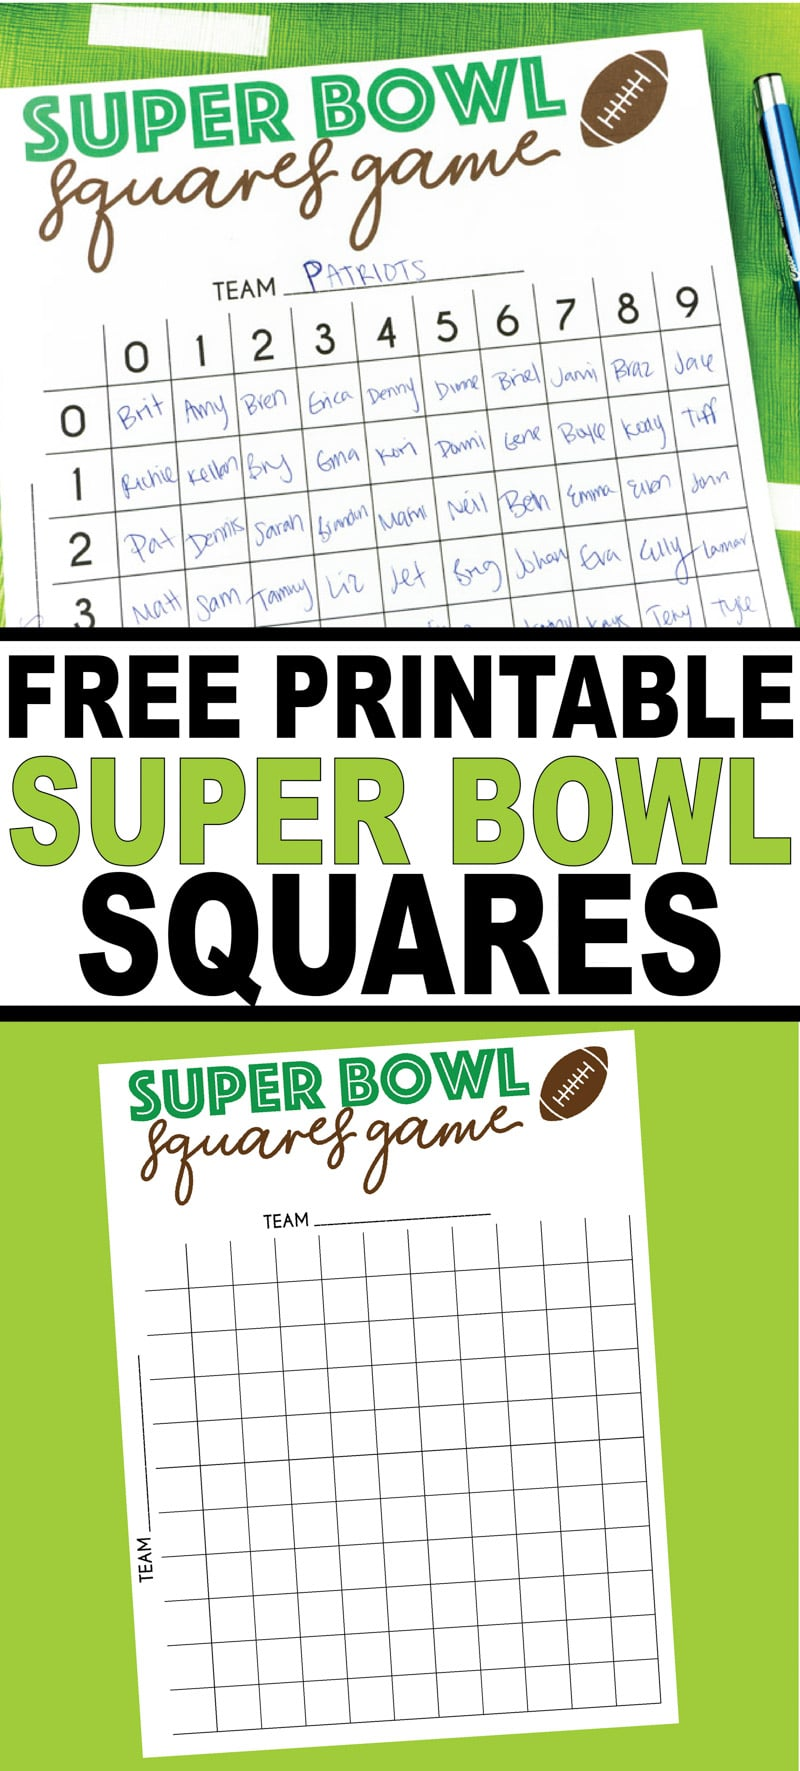 Free printable Super Bowl squares game board! Perfect for any some Super Bowl fun or really watching any football game!